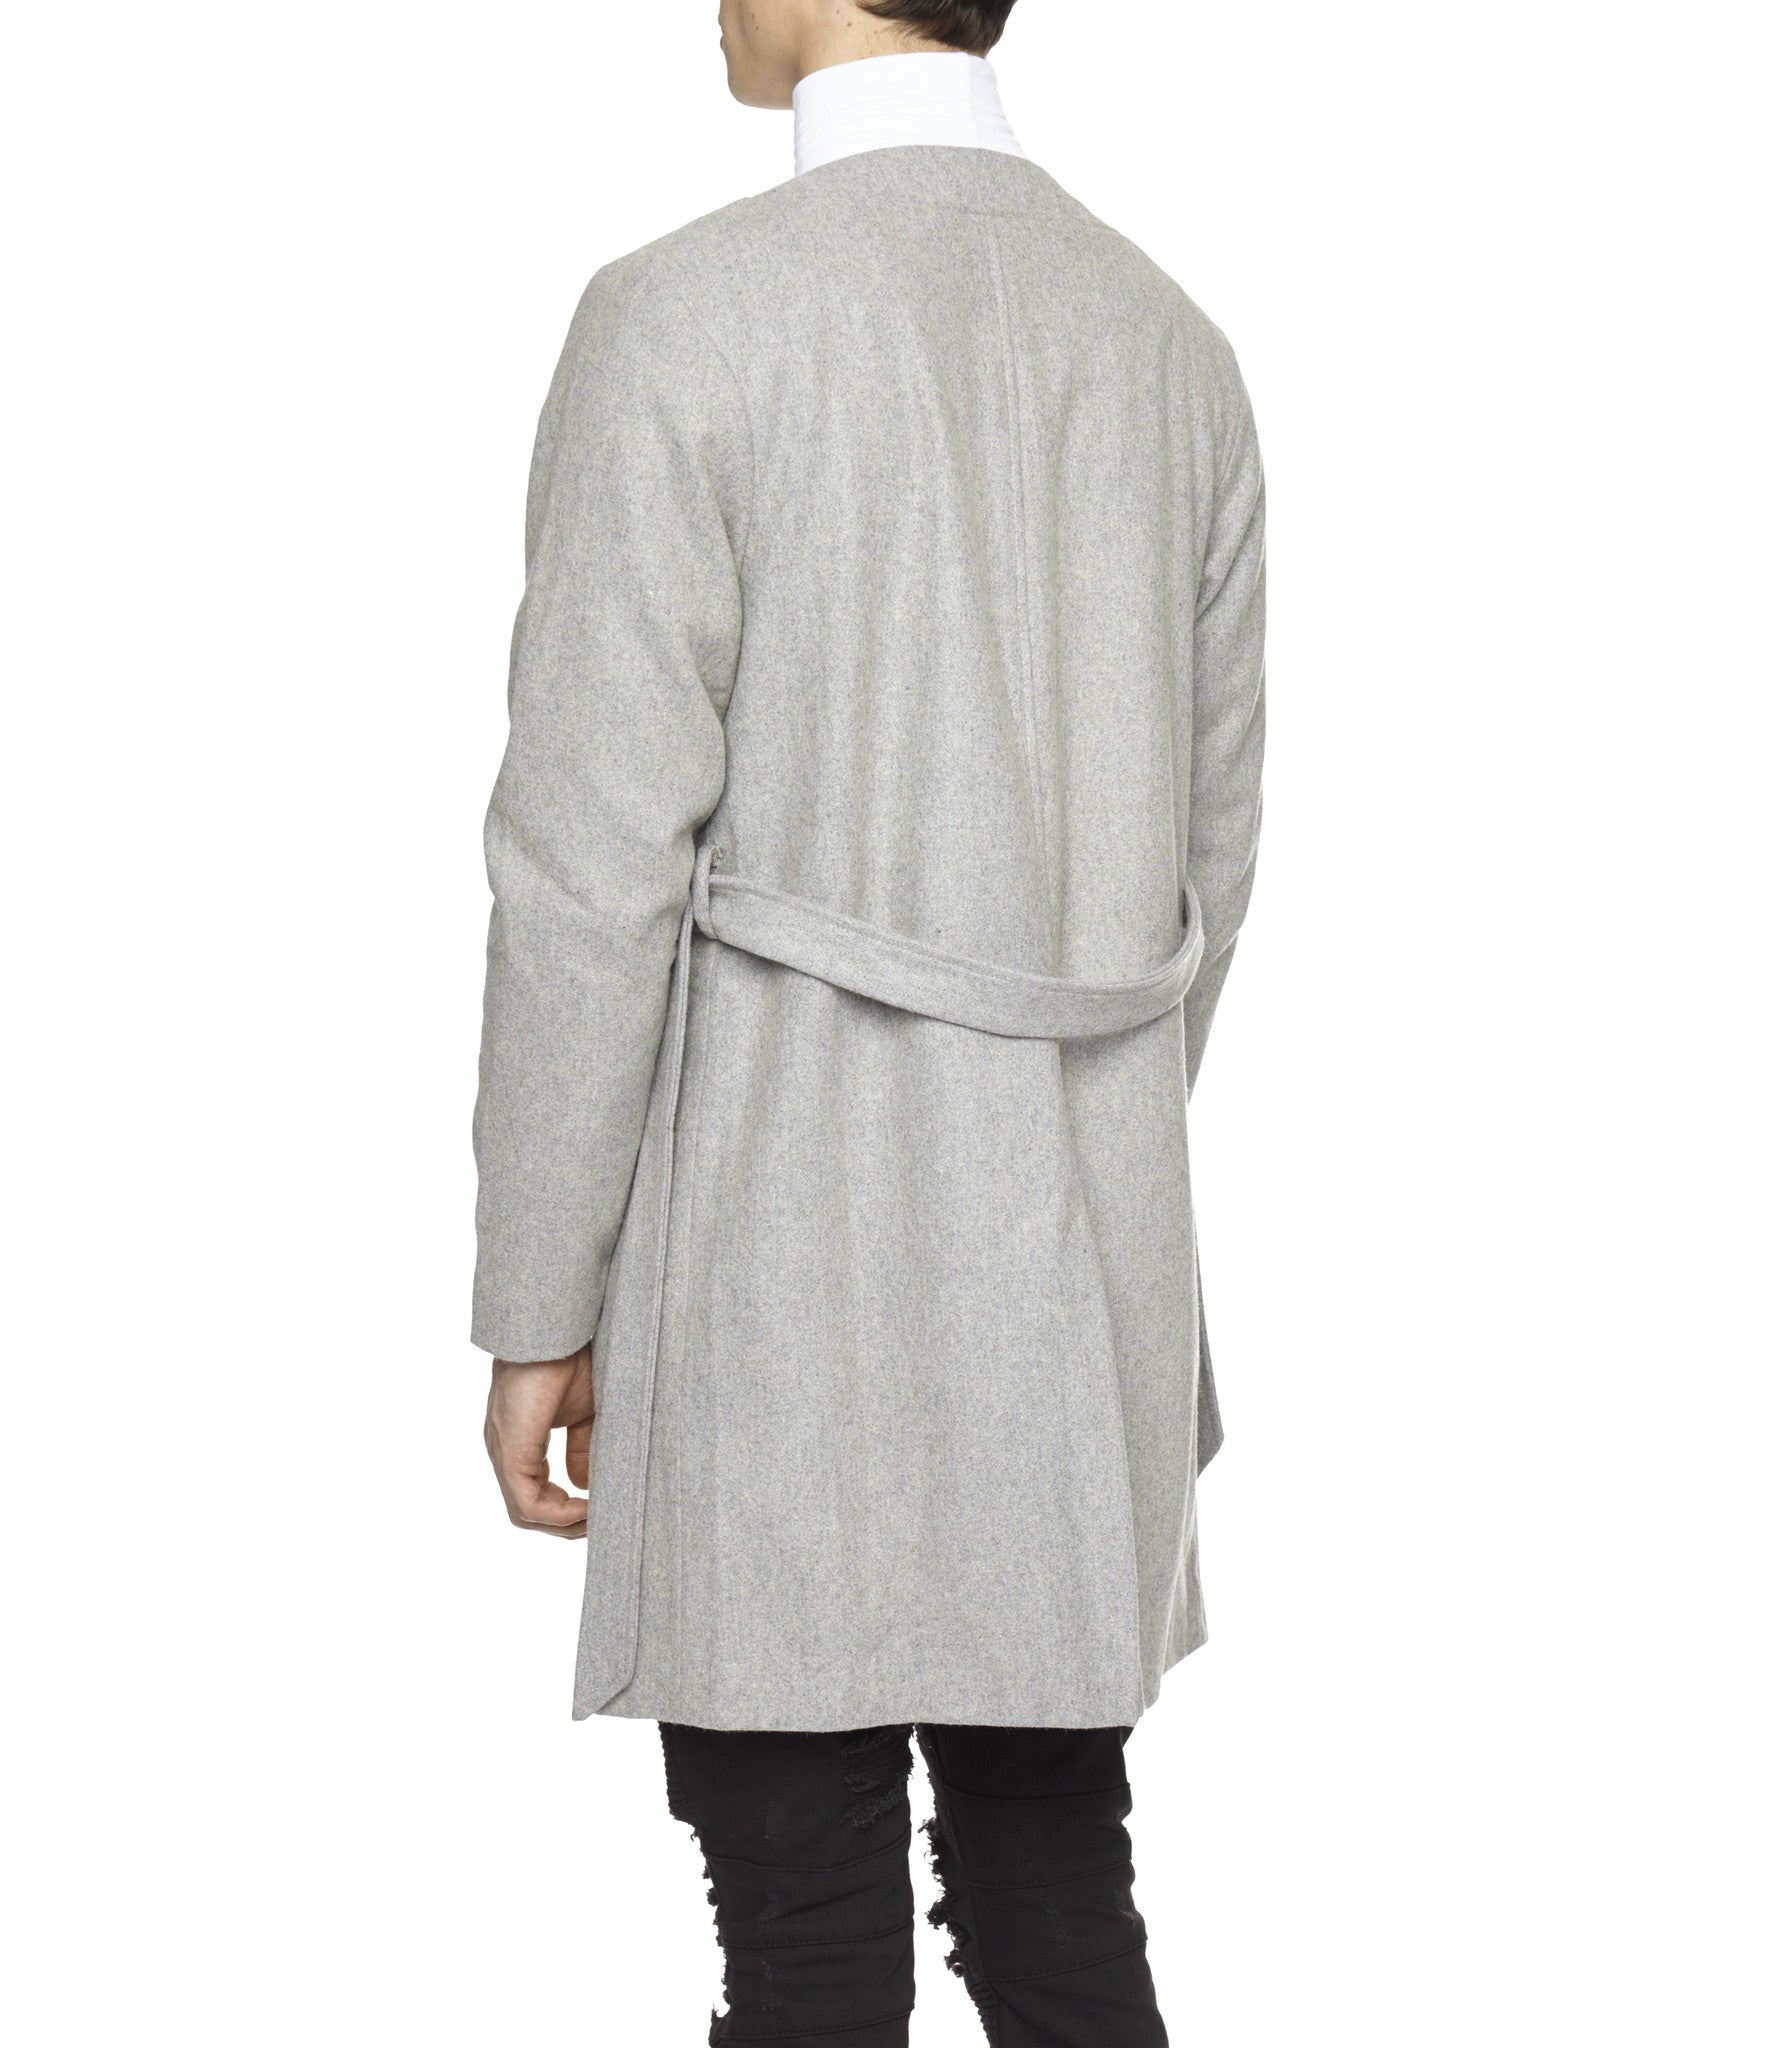 KM070 Wool Blend Kimono Coat - Grey - underated london - underatedco - 5